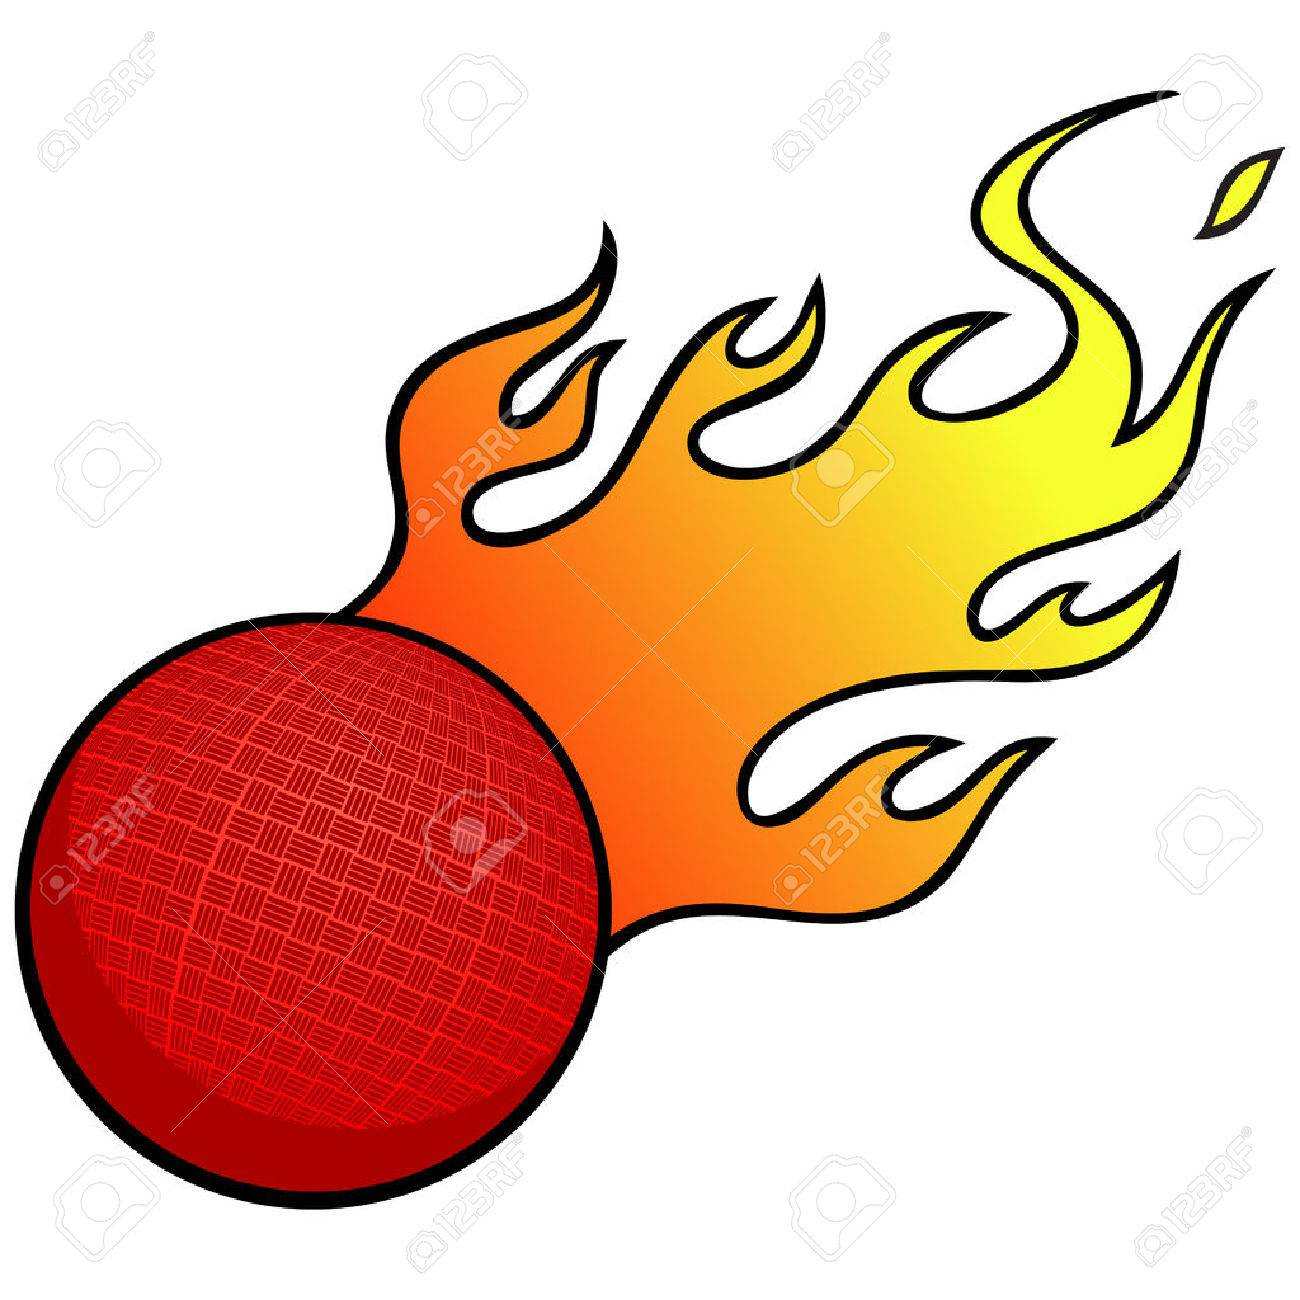 dodgeball with flames royalty free cliparts vectors and stock rh 123rf com dodgeball clipart black and white funny dodgeball clipart